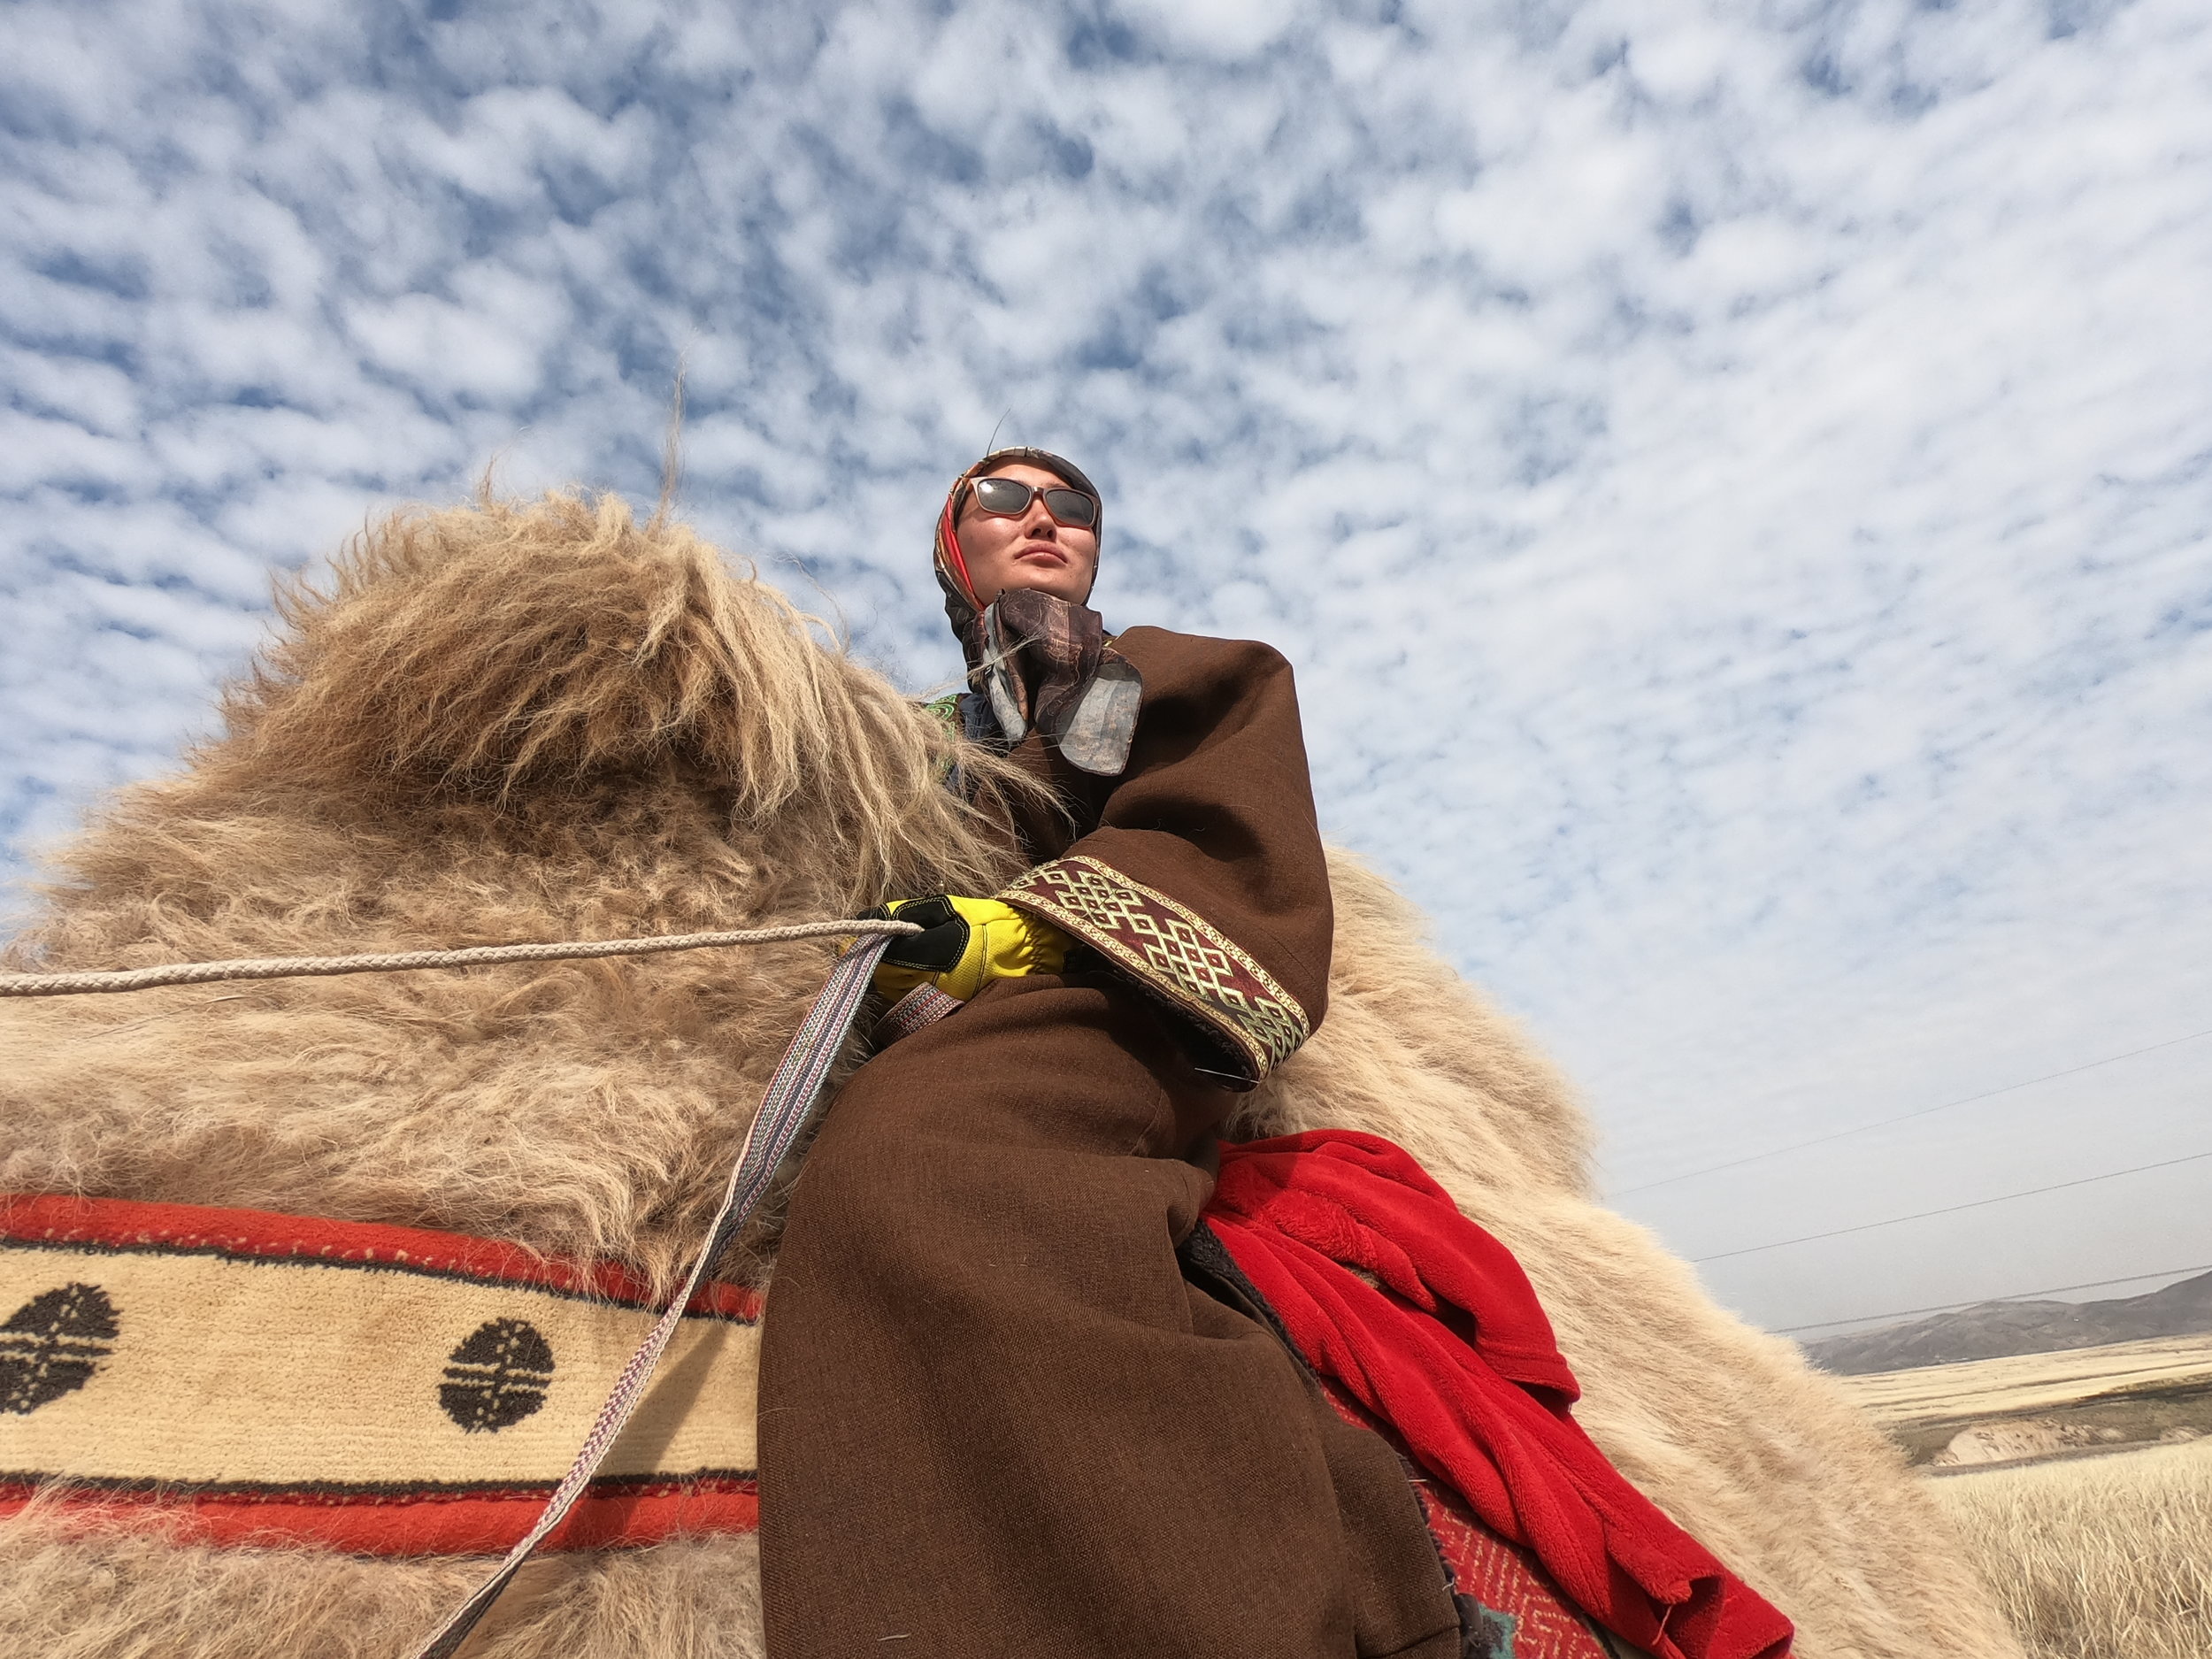 BBC (May 2019) - The woman travelling 12,000 km by camel - Story filmed in Kazakhstan for BBC Reel: Baigalmaa Norjmaa defies all odds by leading a herd of camels over an incredible 12,000km journey from Mongolia to London, UK.